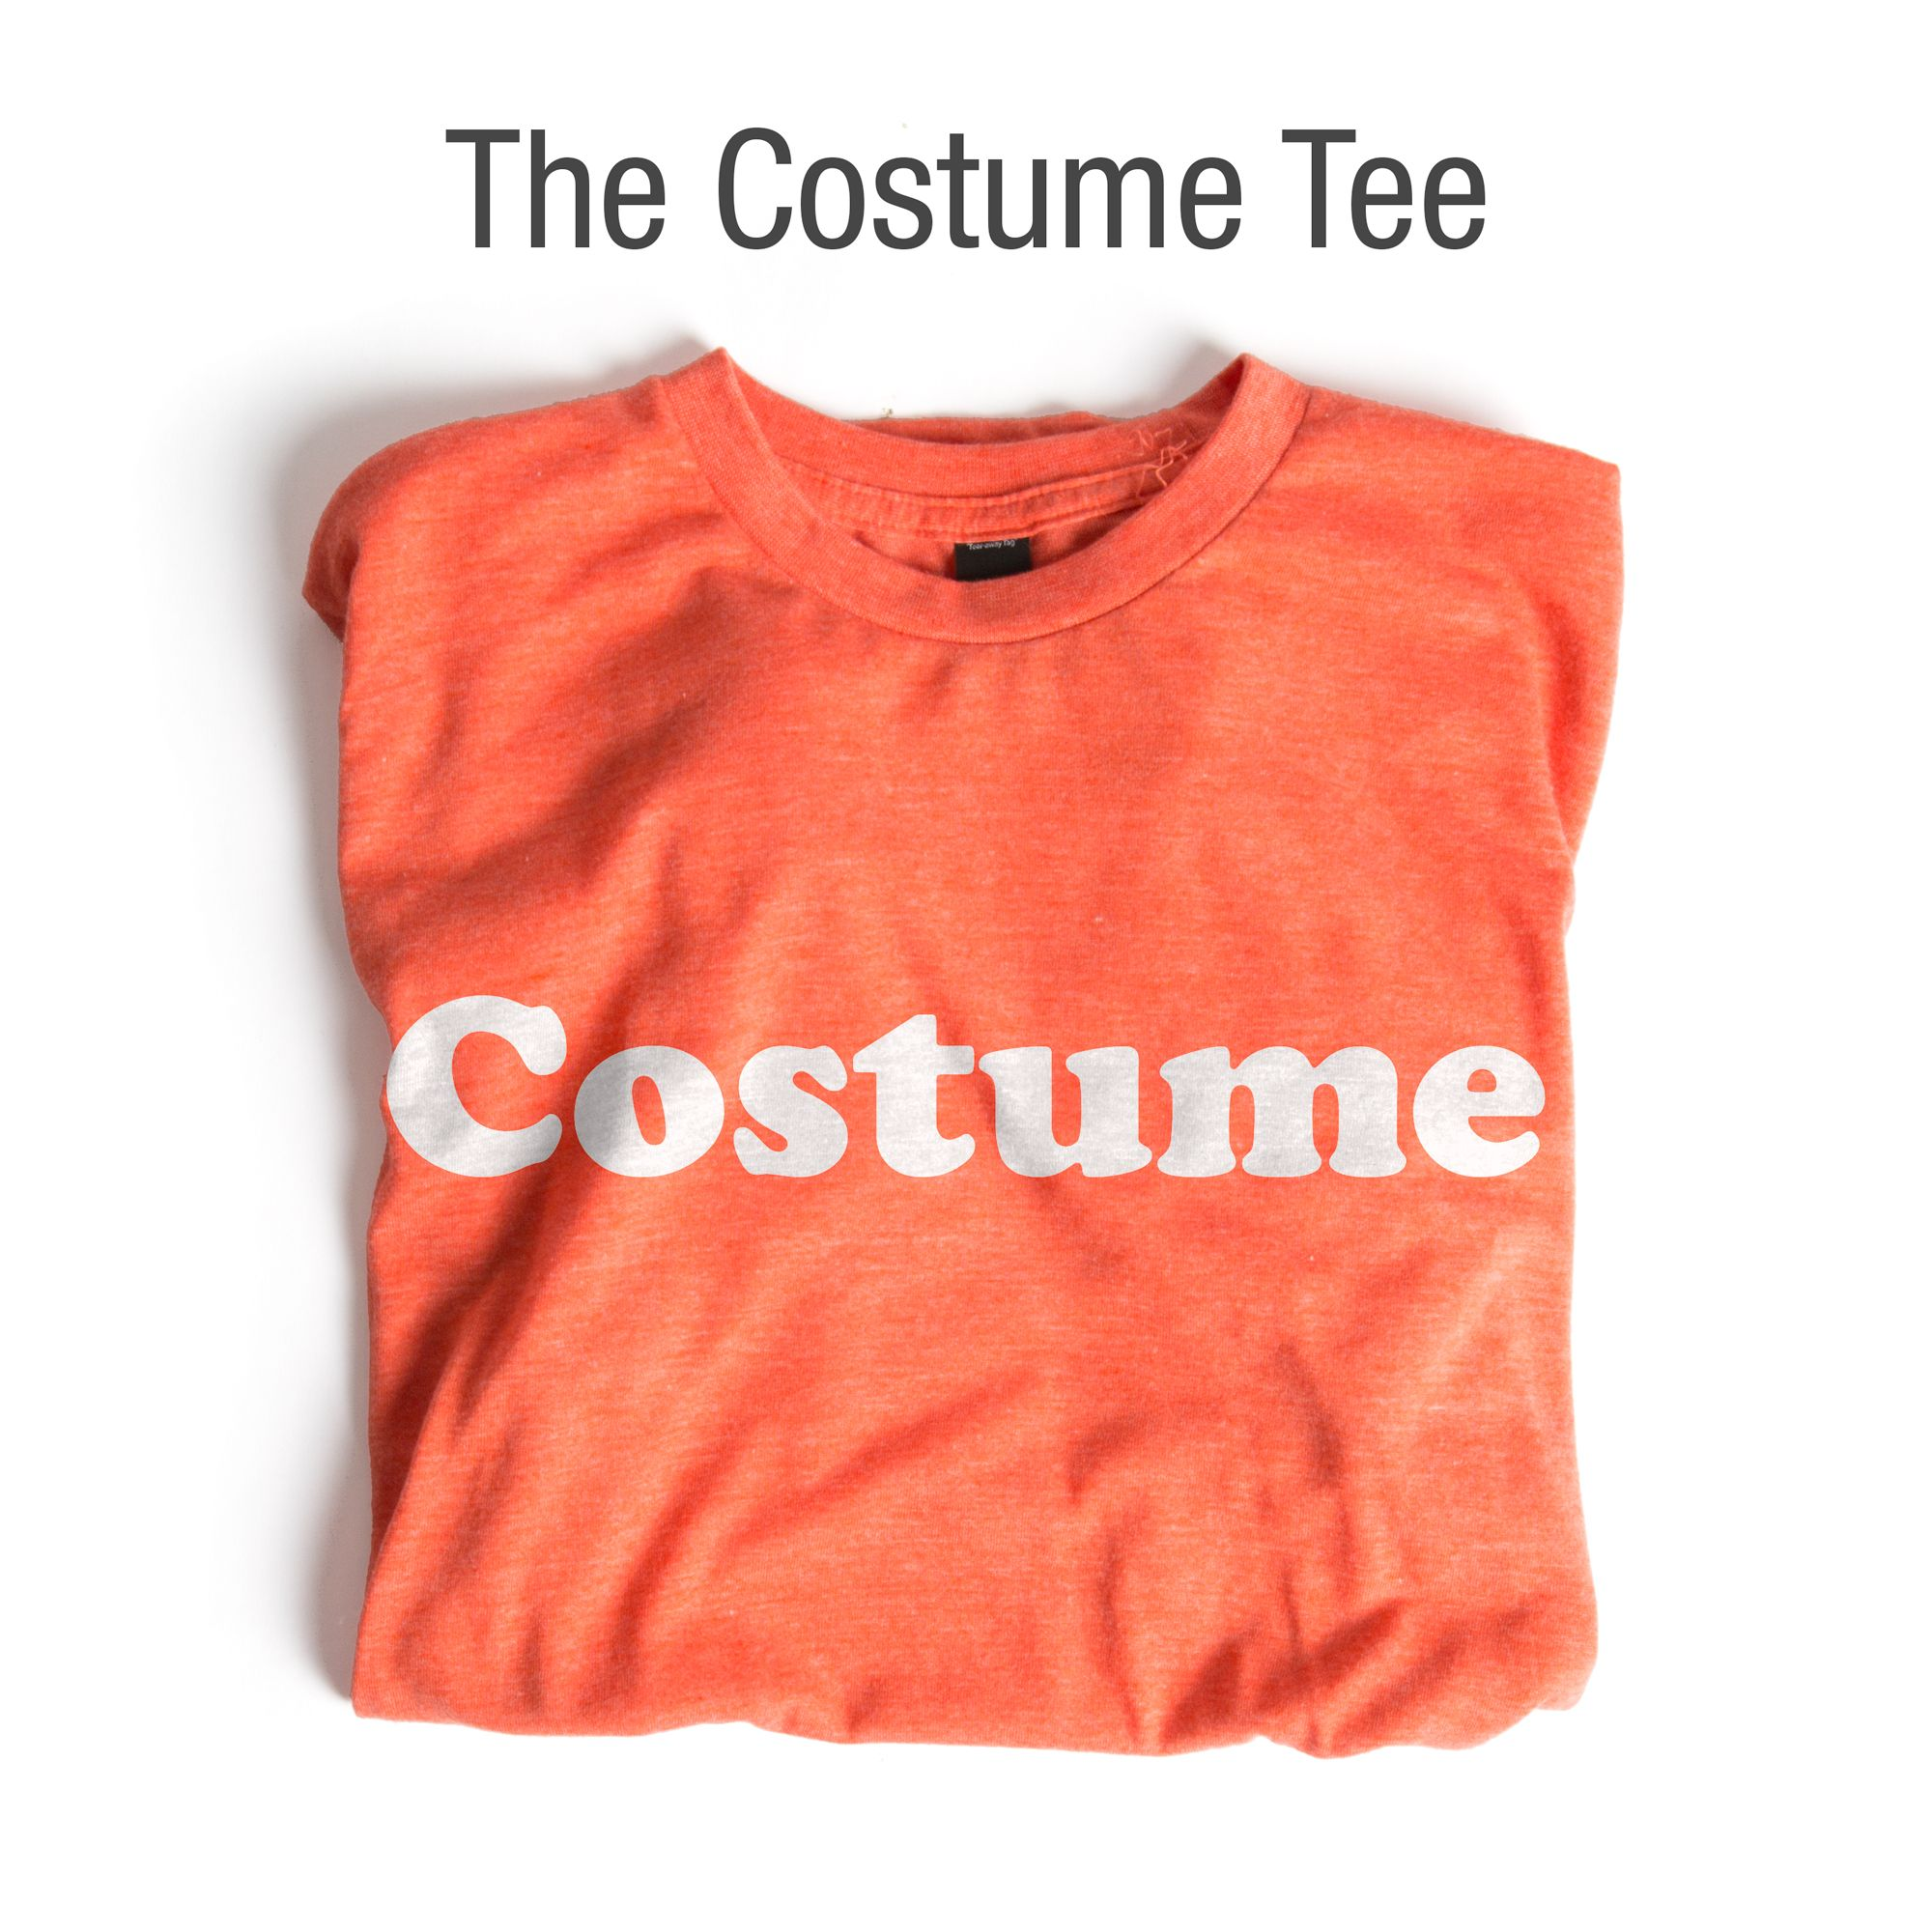 Our Costume Tee example Halloween costume.